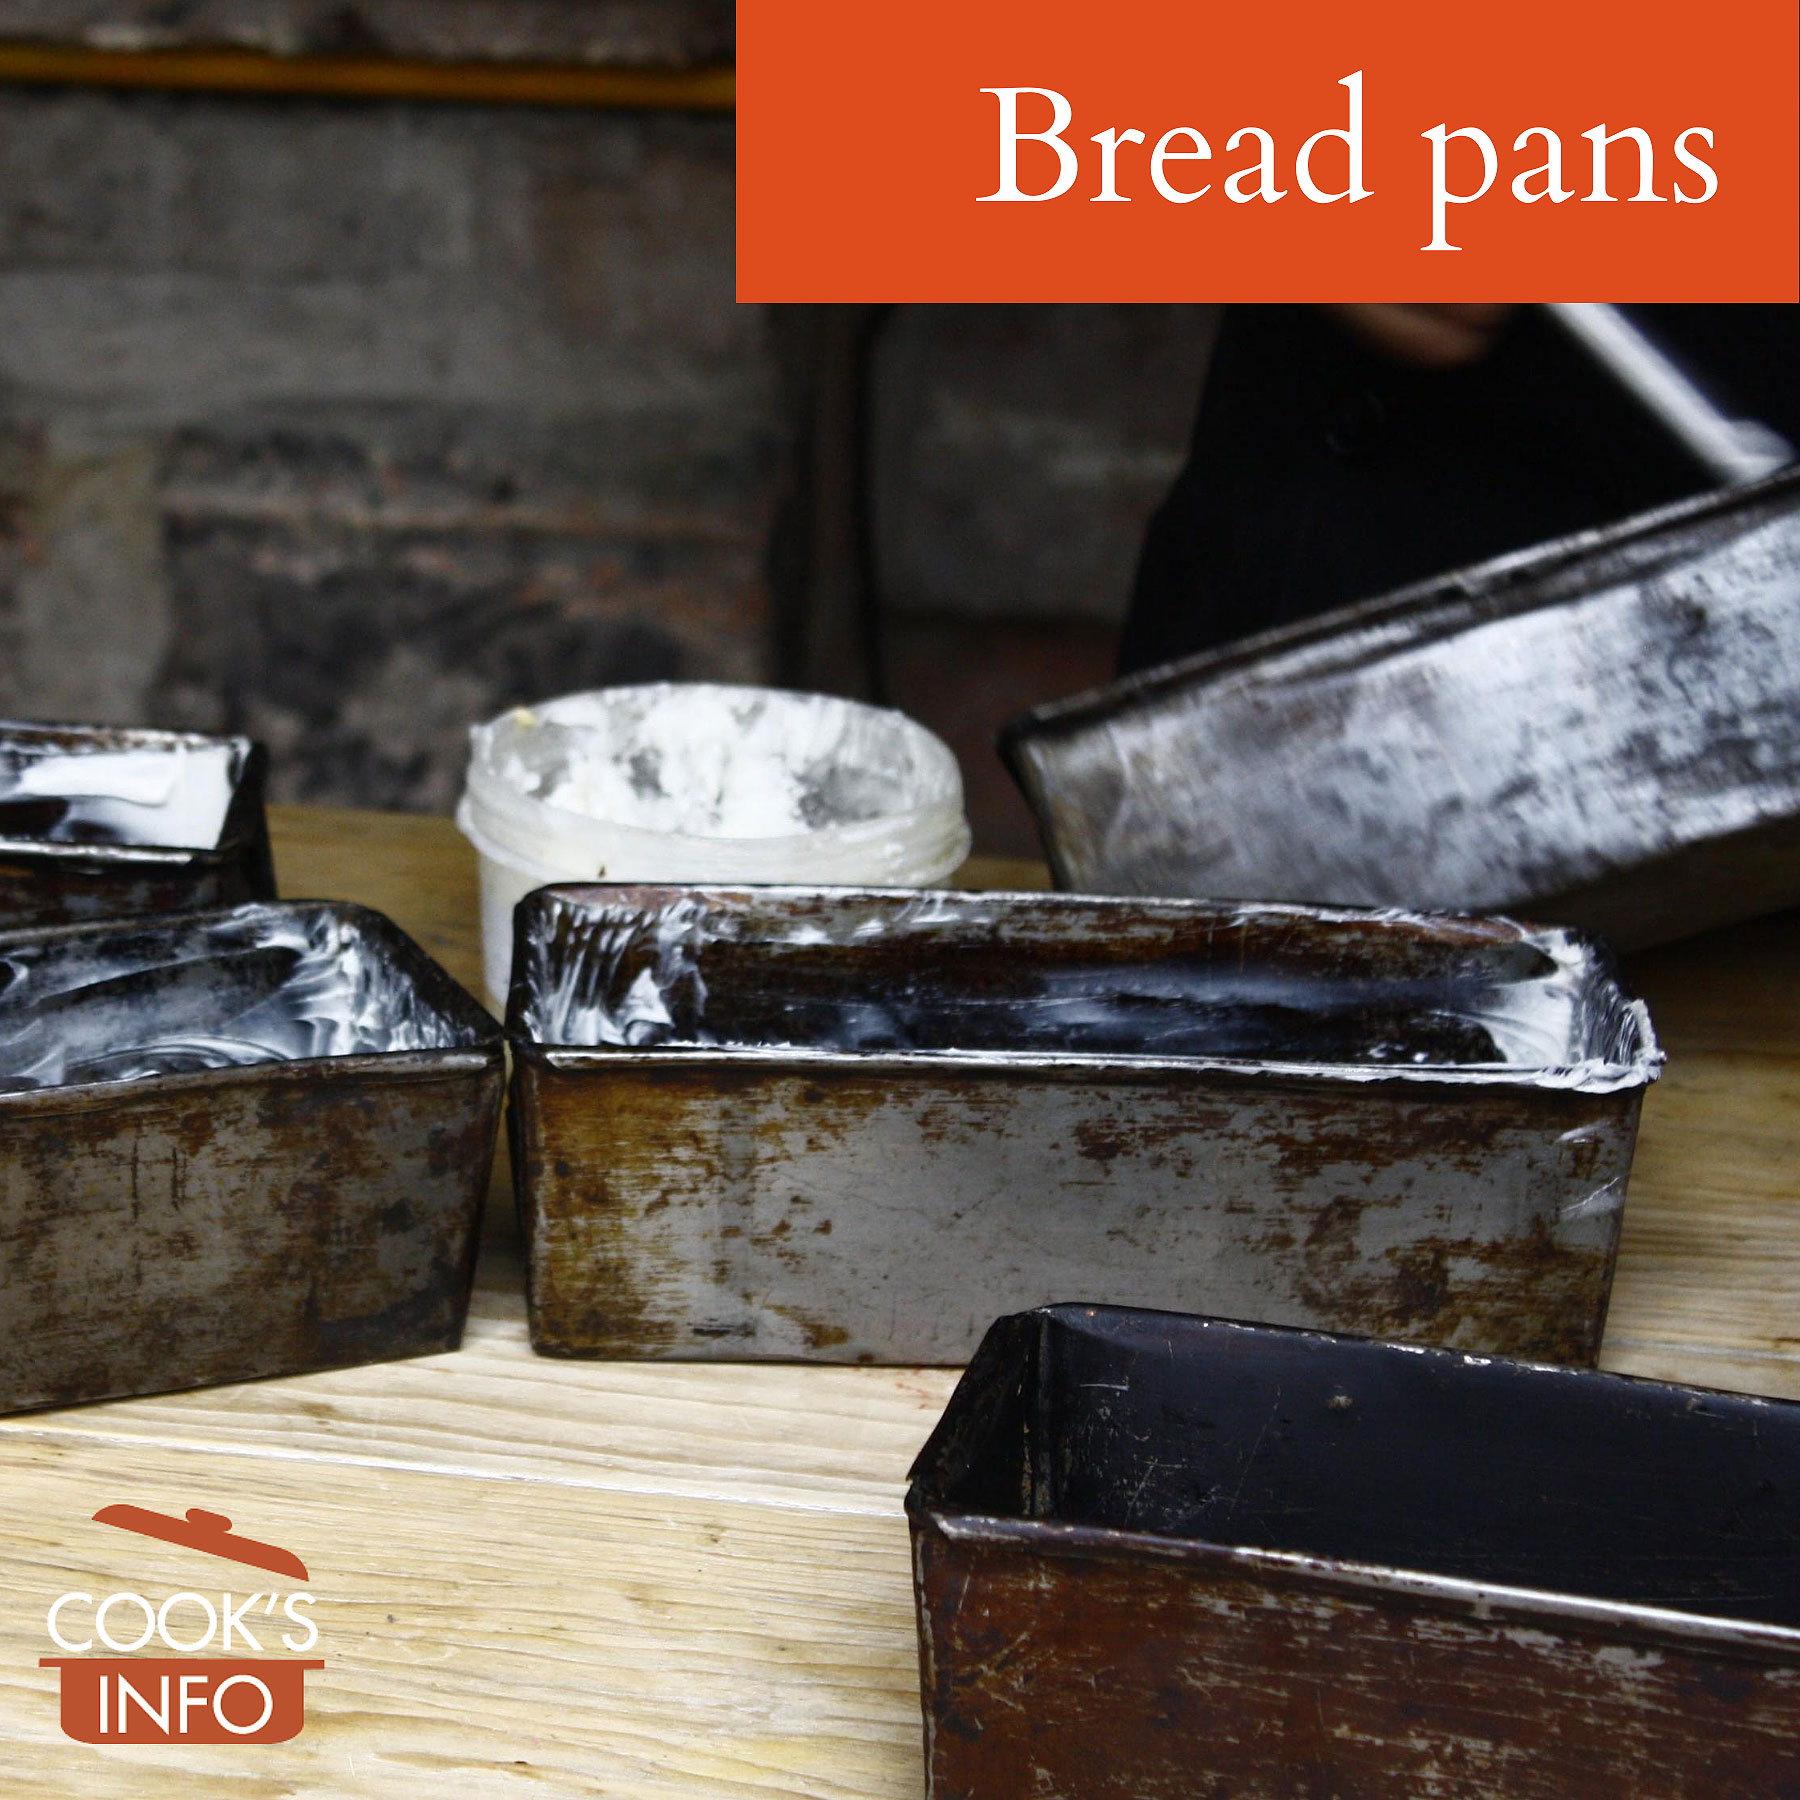 Bread pans being greased